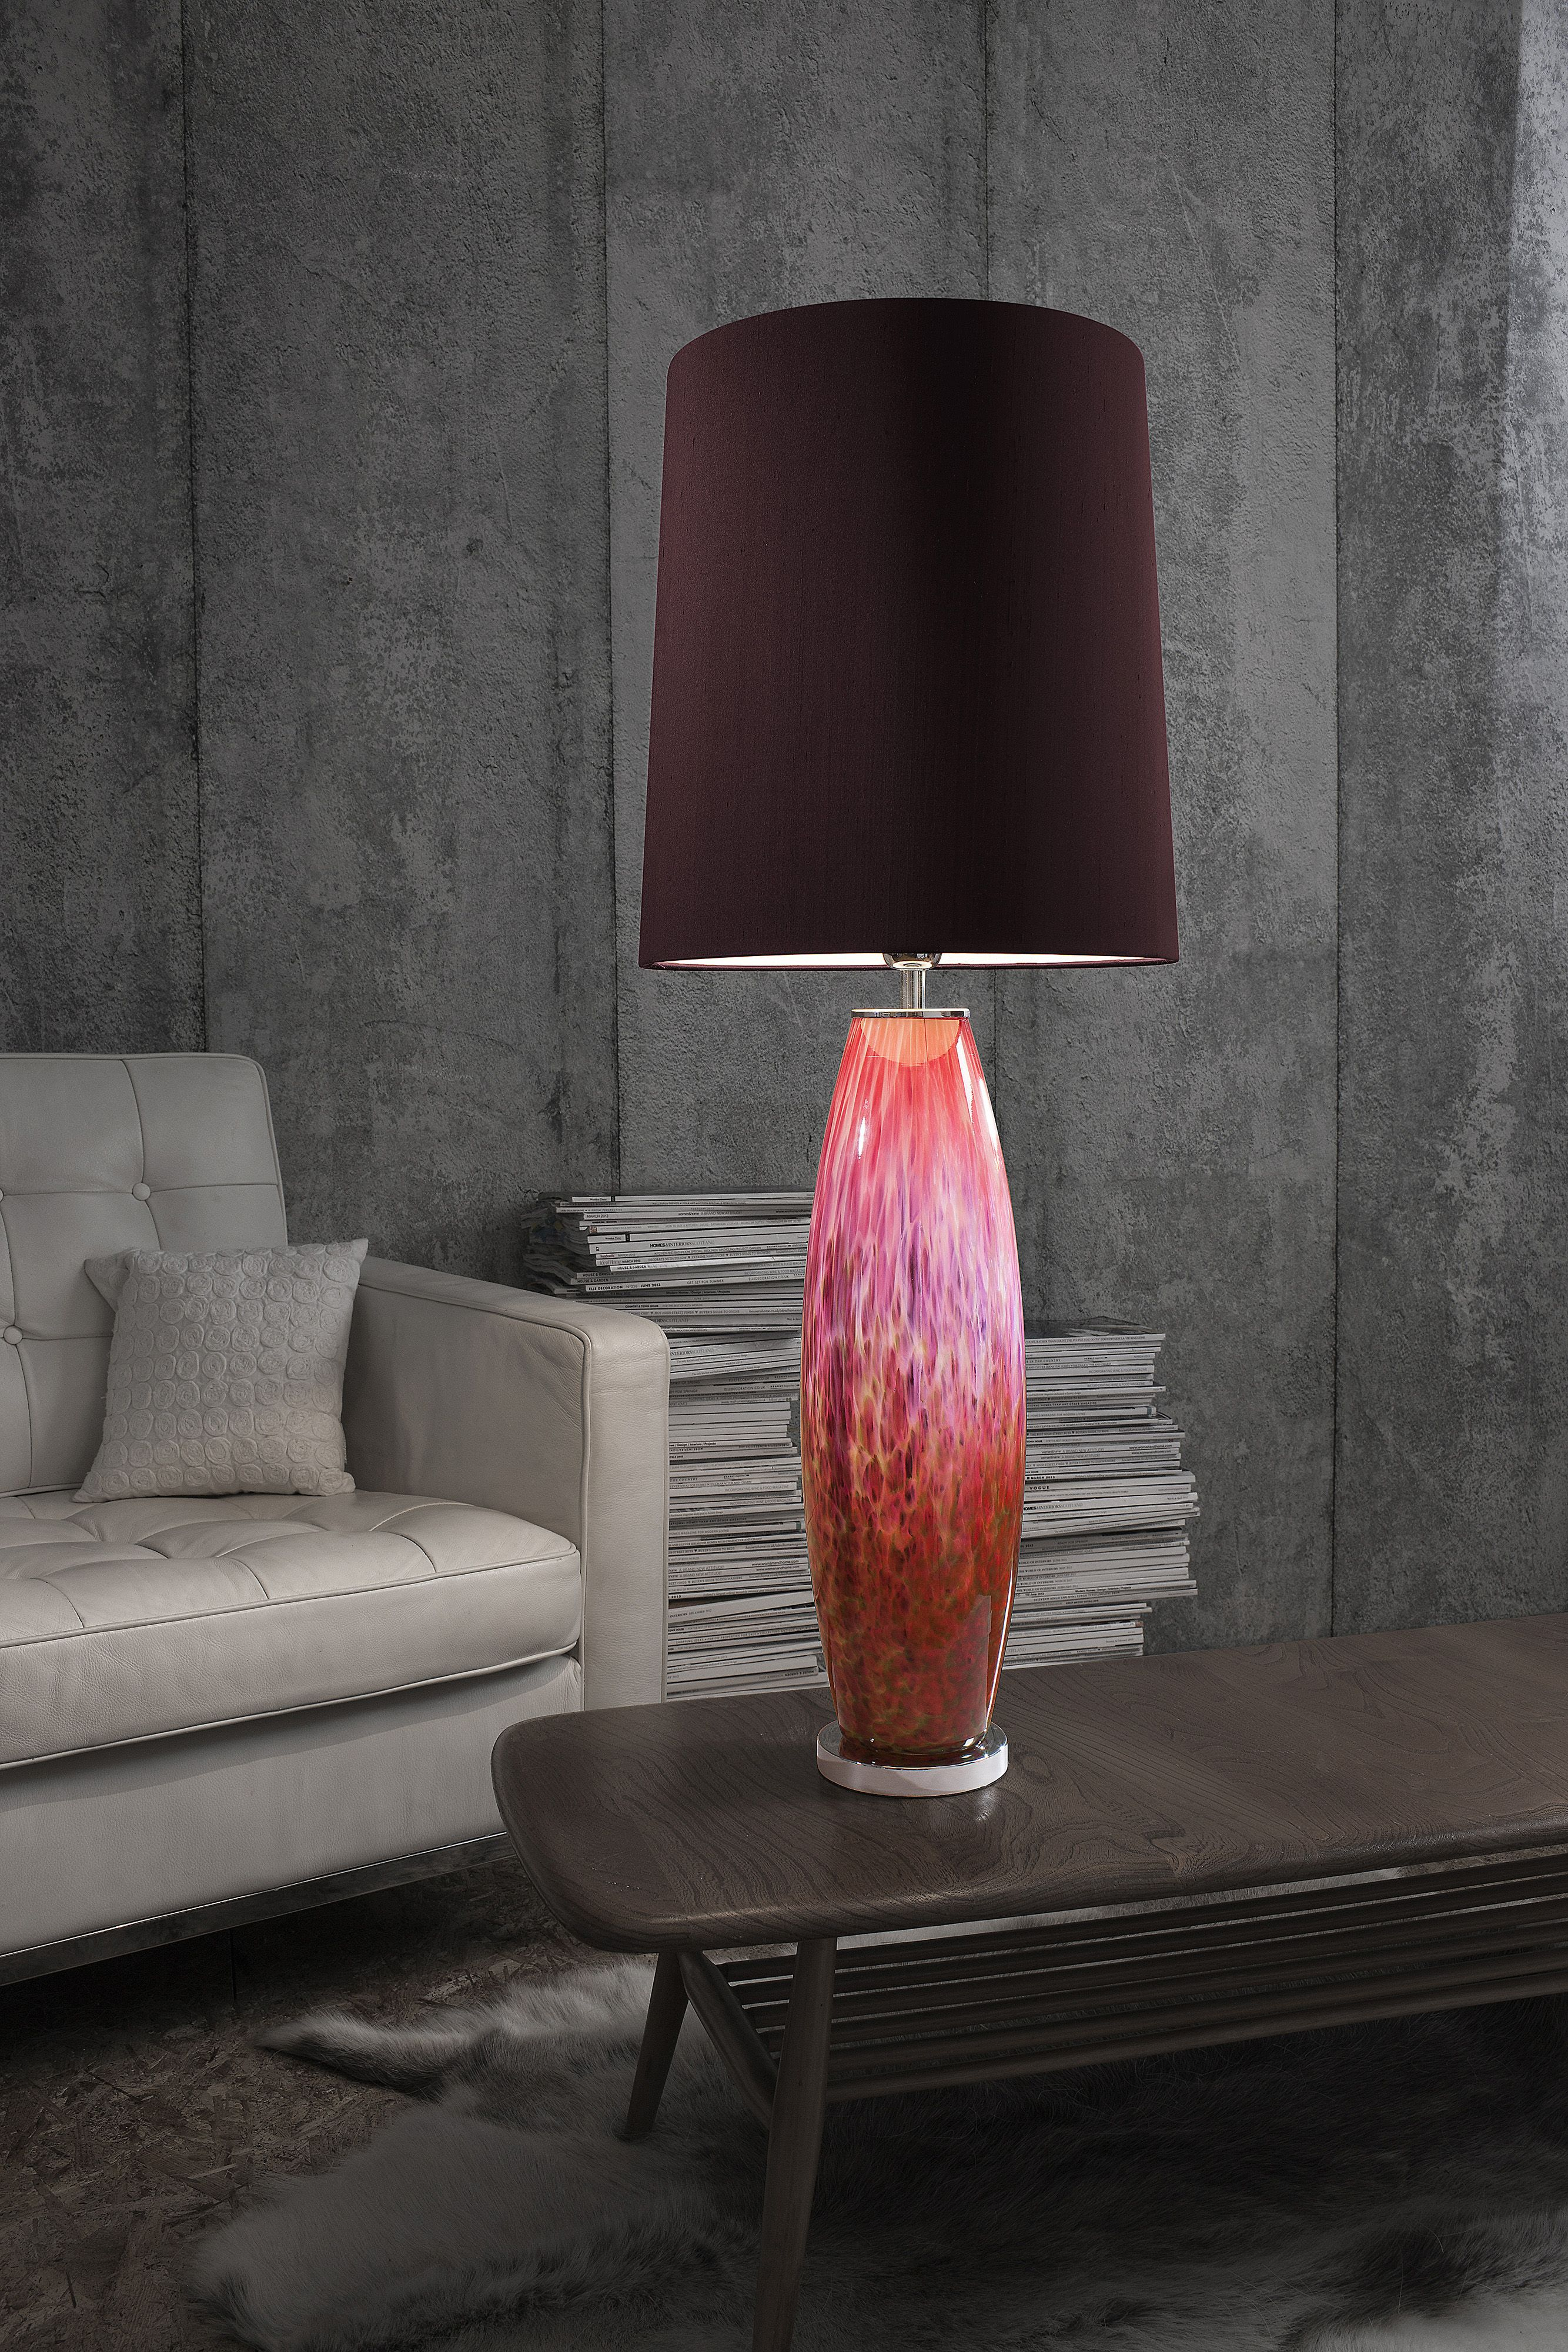 The provence table lamp range is available in three decorative the provence table lamp range is available in three decorative colours and finishes mould blown aloadofball Choice Image